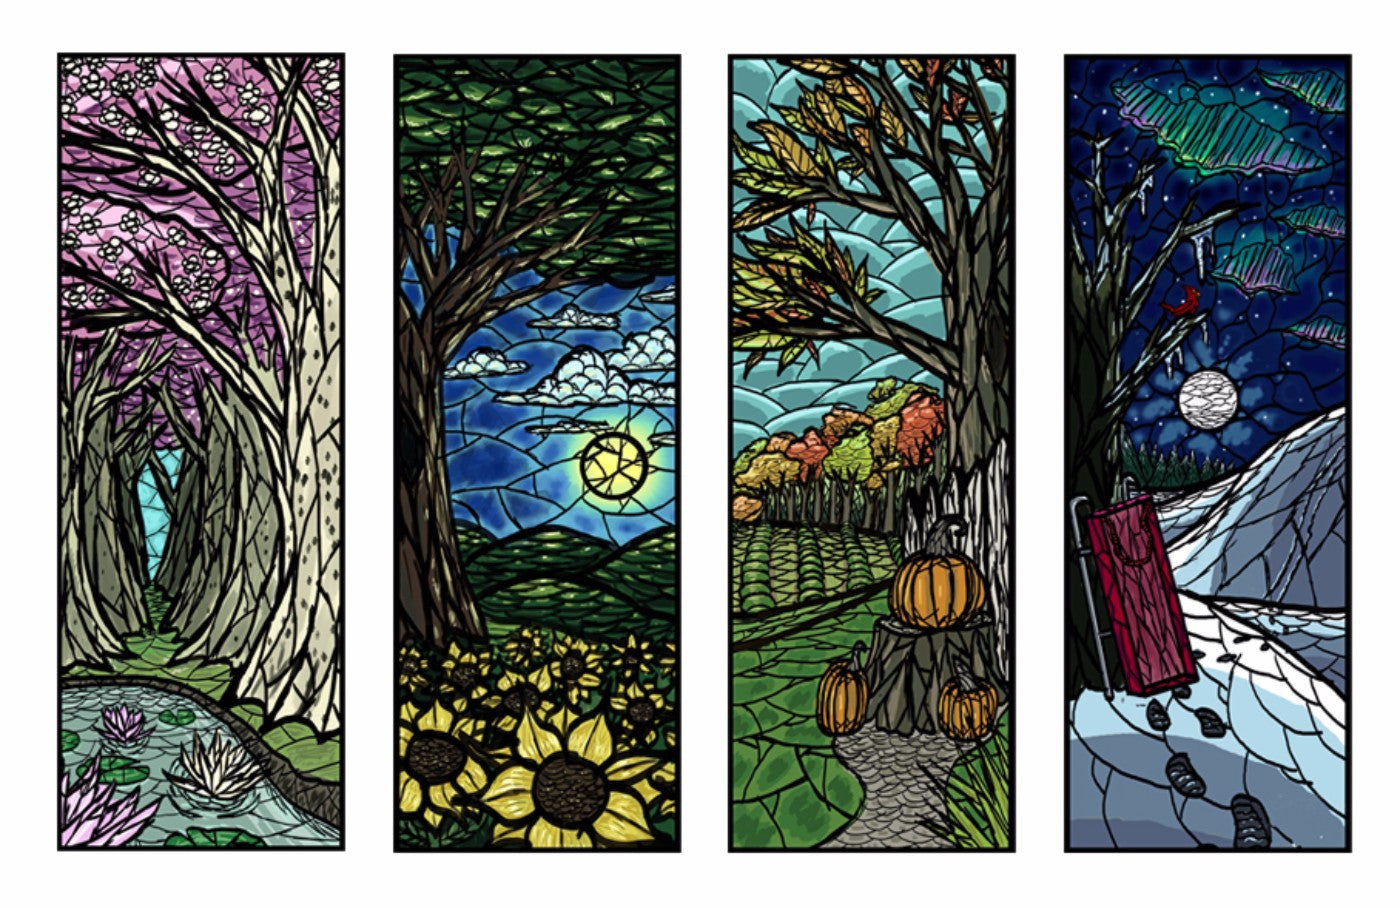 Four Seasons - Stained Glass Style - Art Panels by Hamid Raza | Buy ...